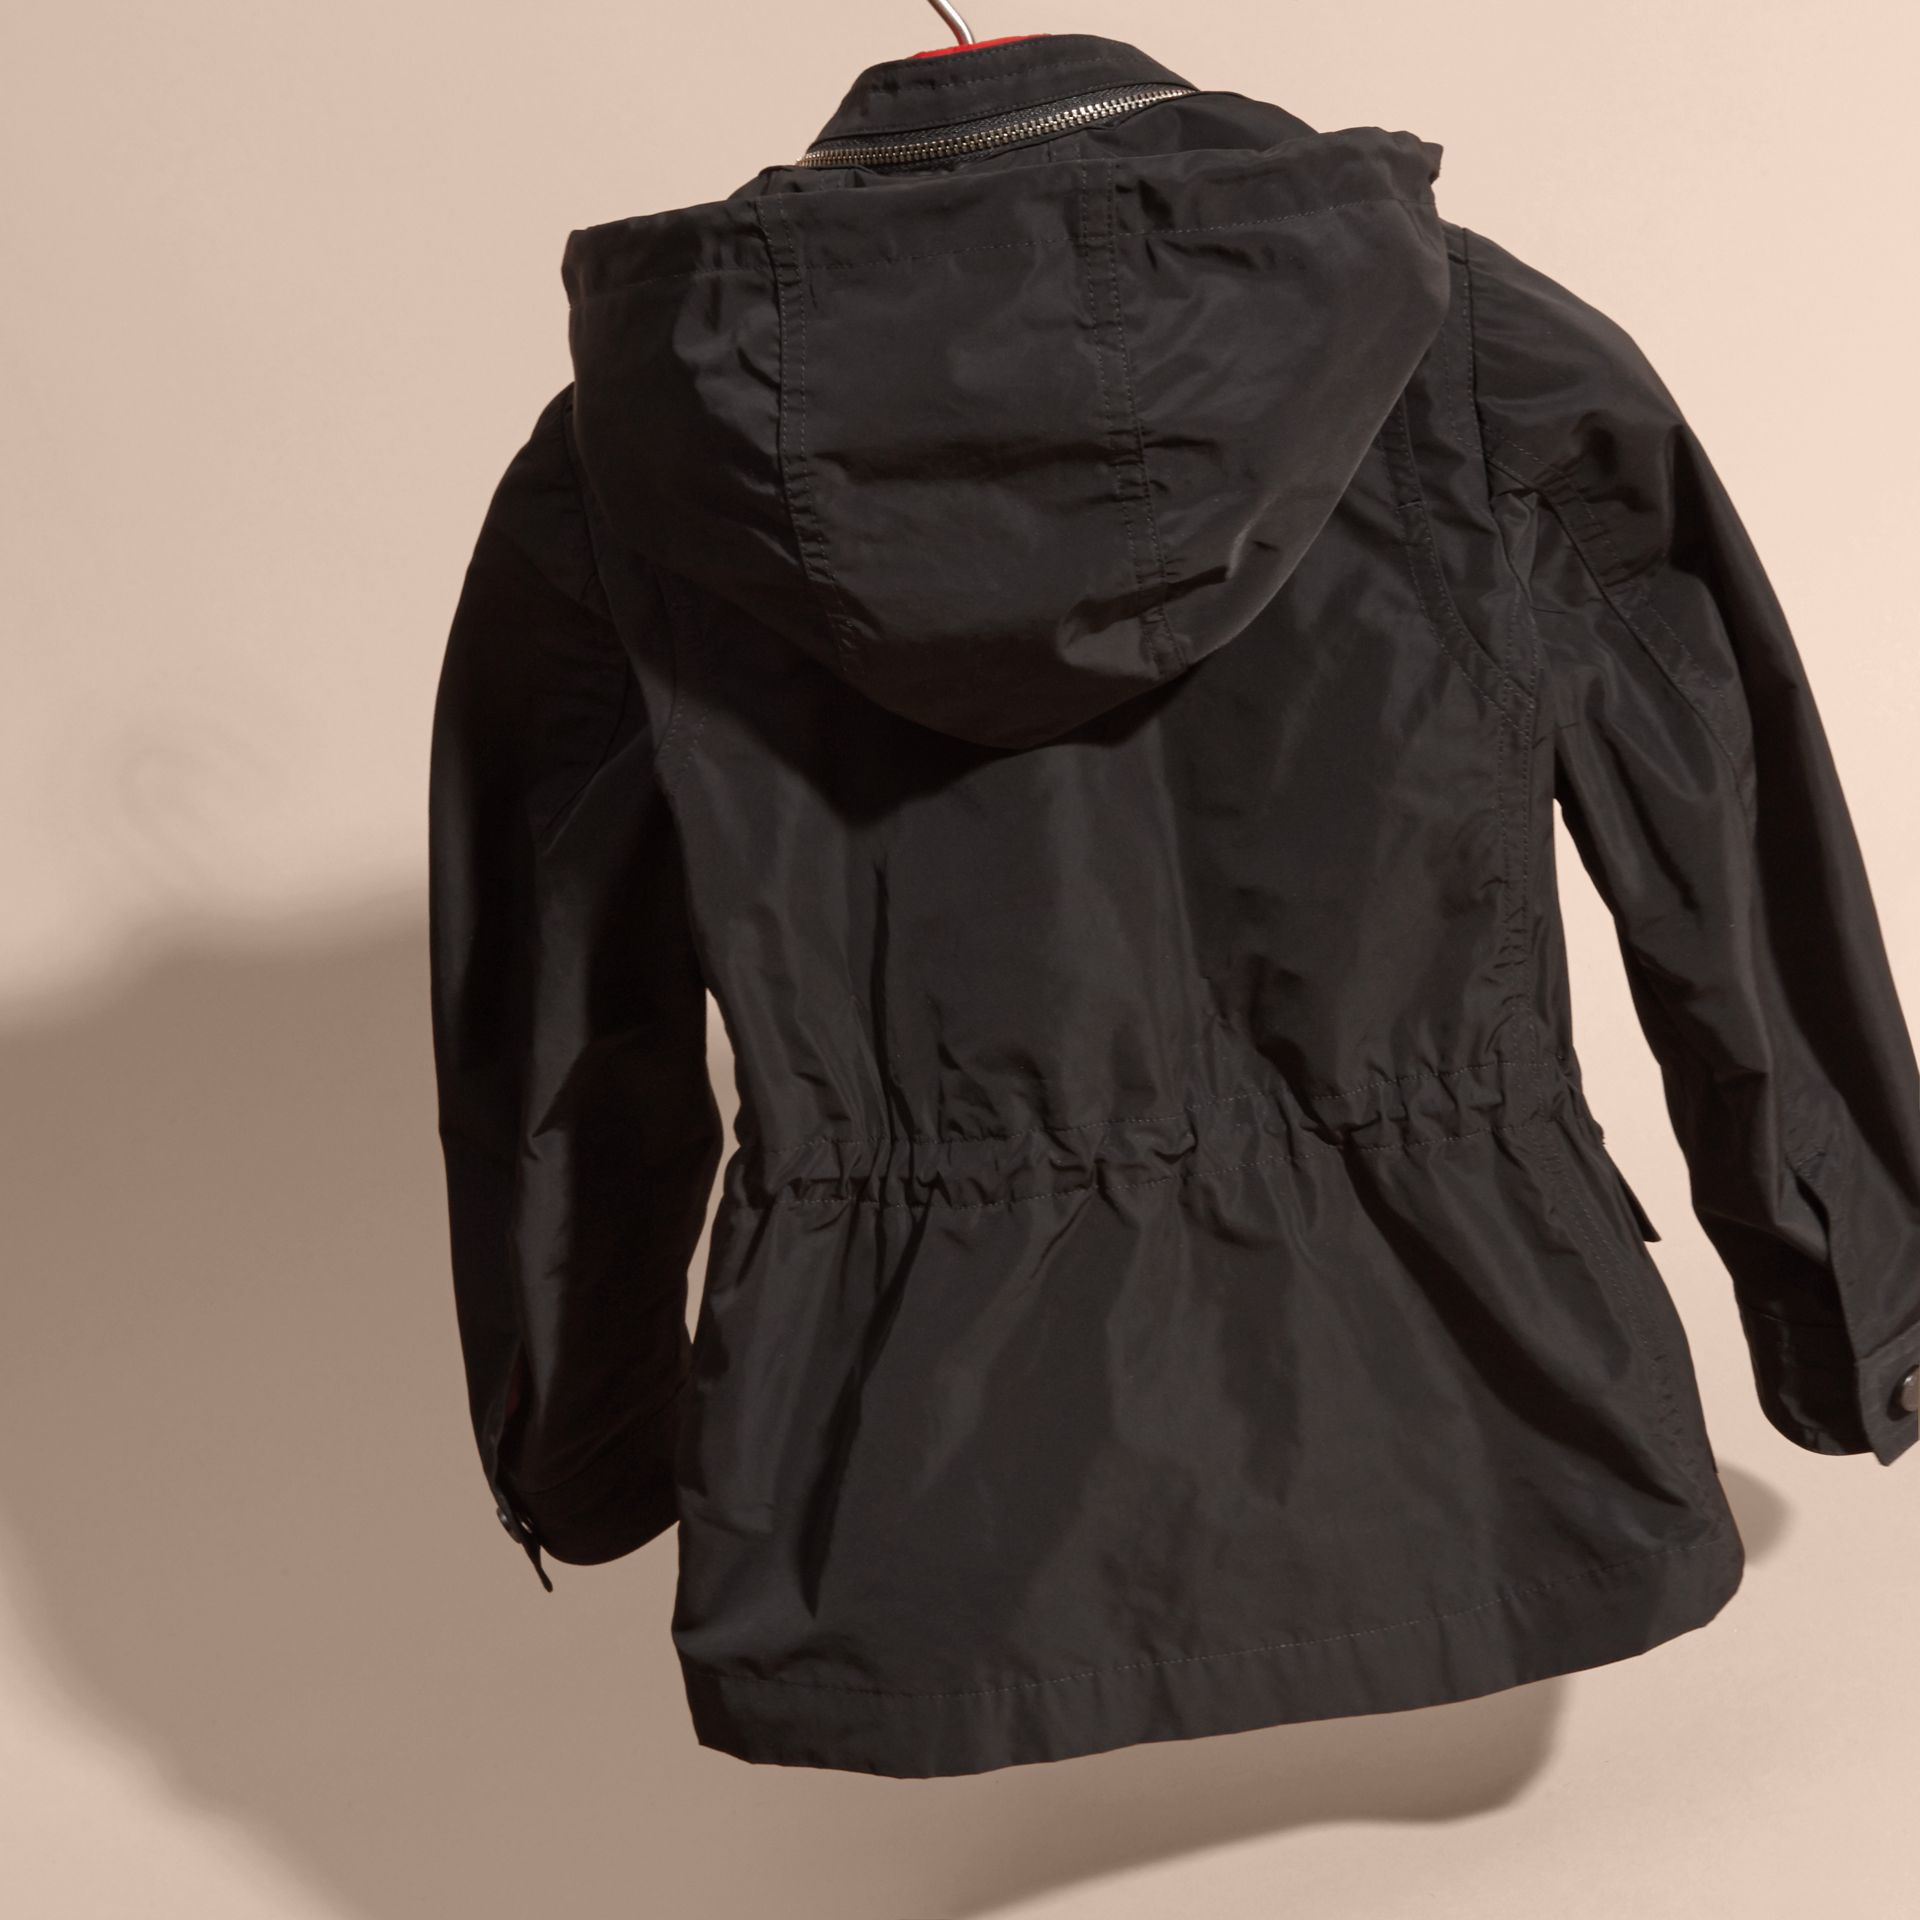 Showerproof Field Jacket with Detachable Down-filled Warmer - gallery image 4